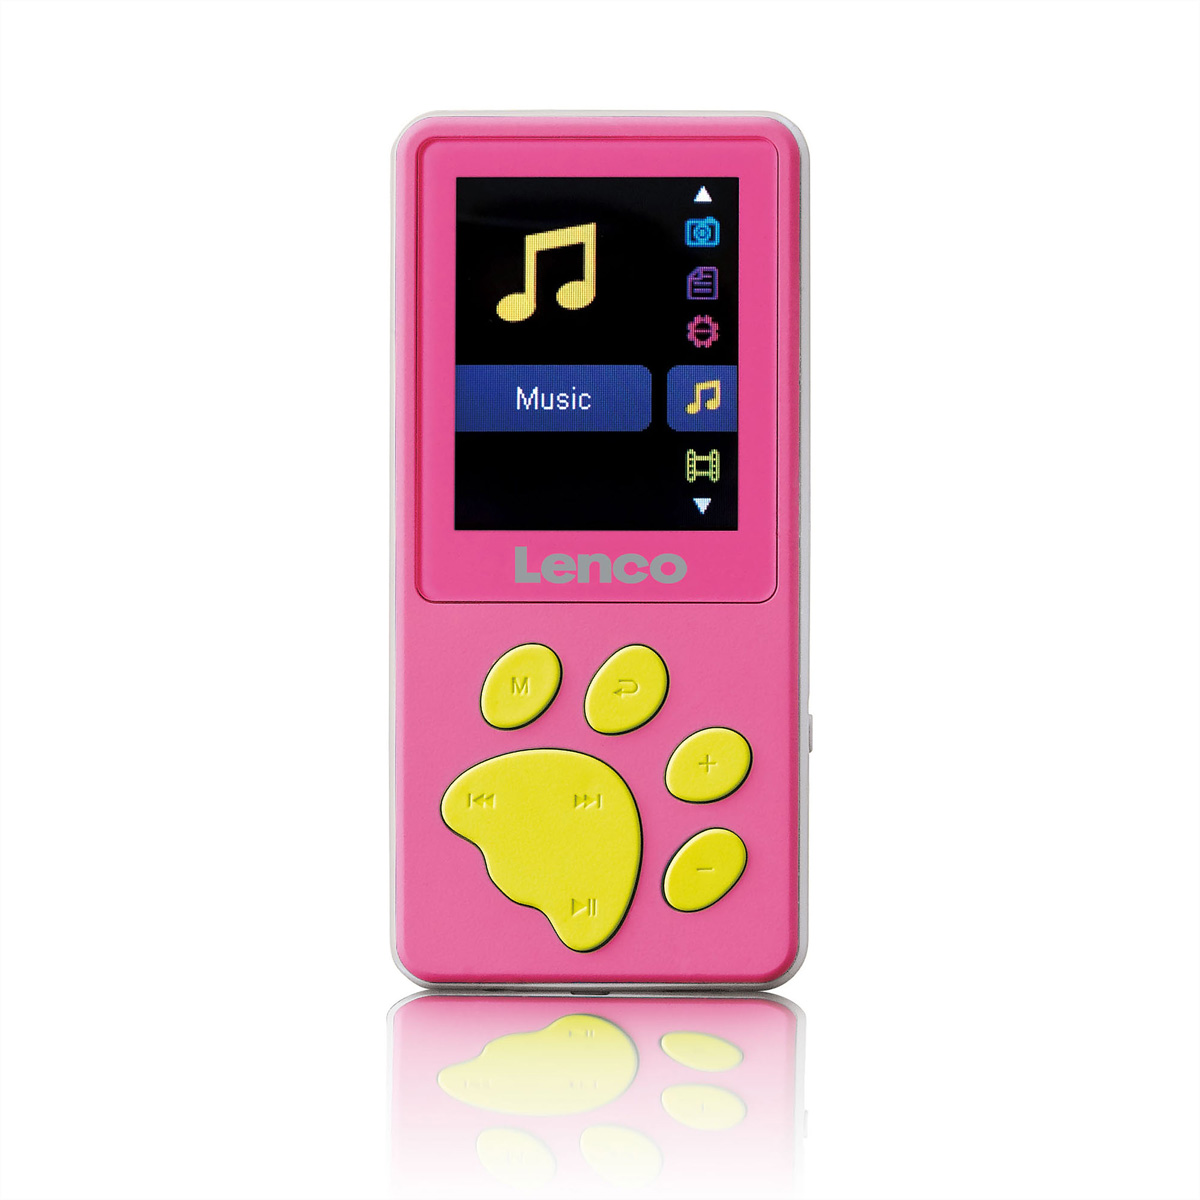 Lenco XEMIO-560 Kids MP4 Player, pink, SD Slot, Kopfhörer